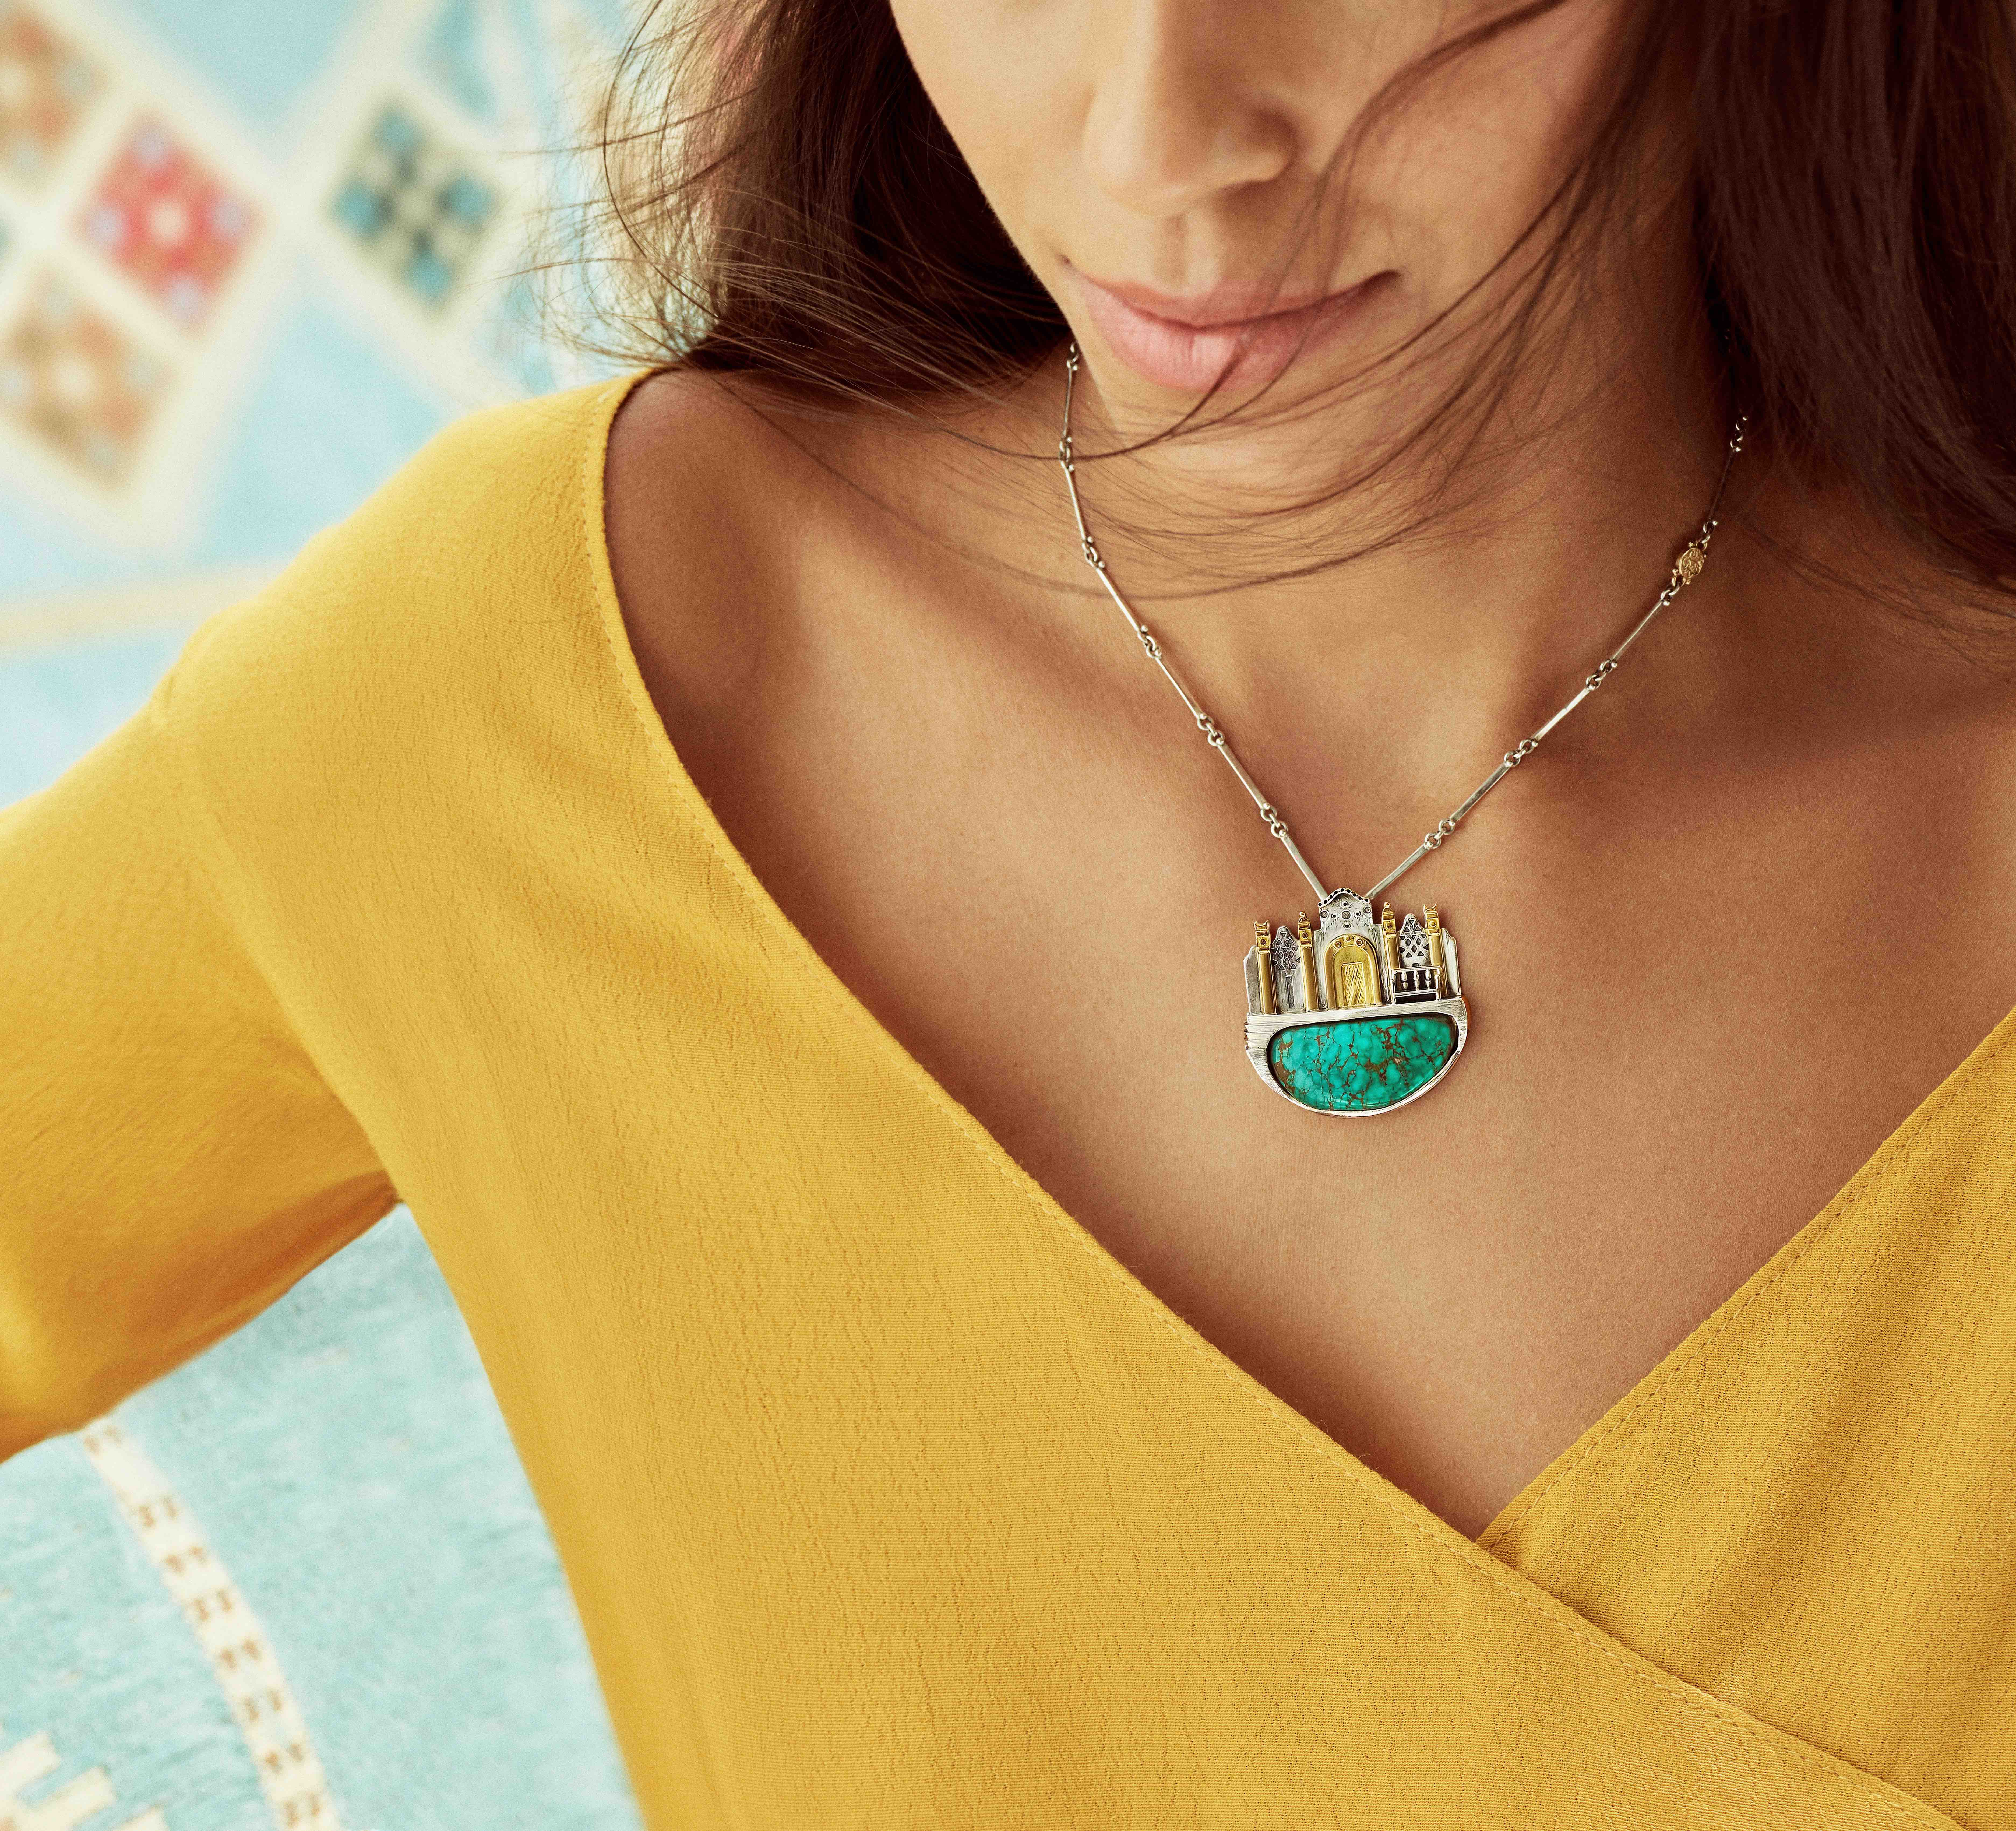 Azza Fahmy Jewellery Nubia collection turquoise necklace